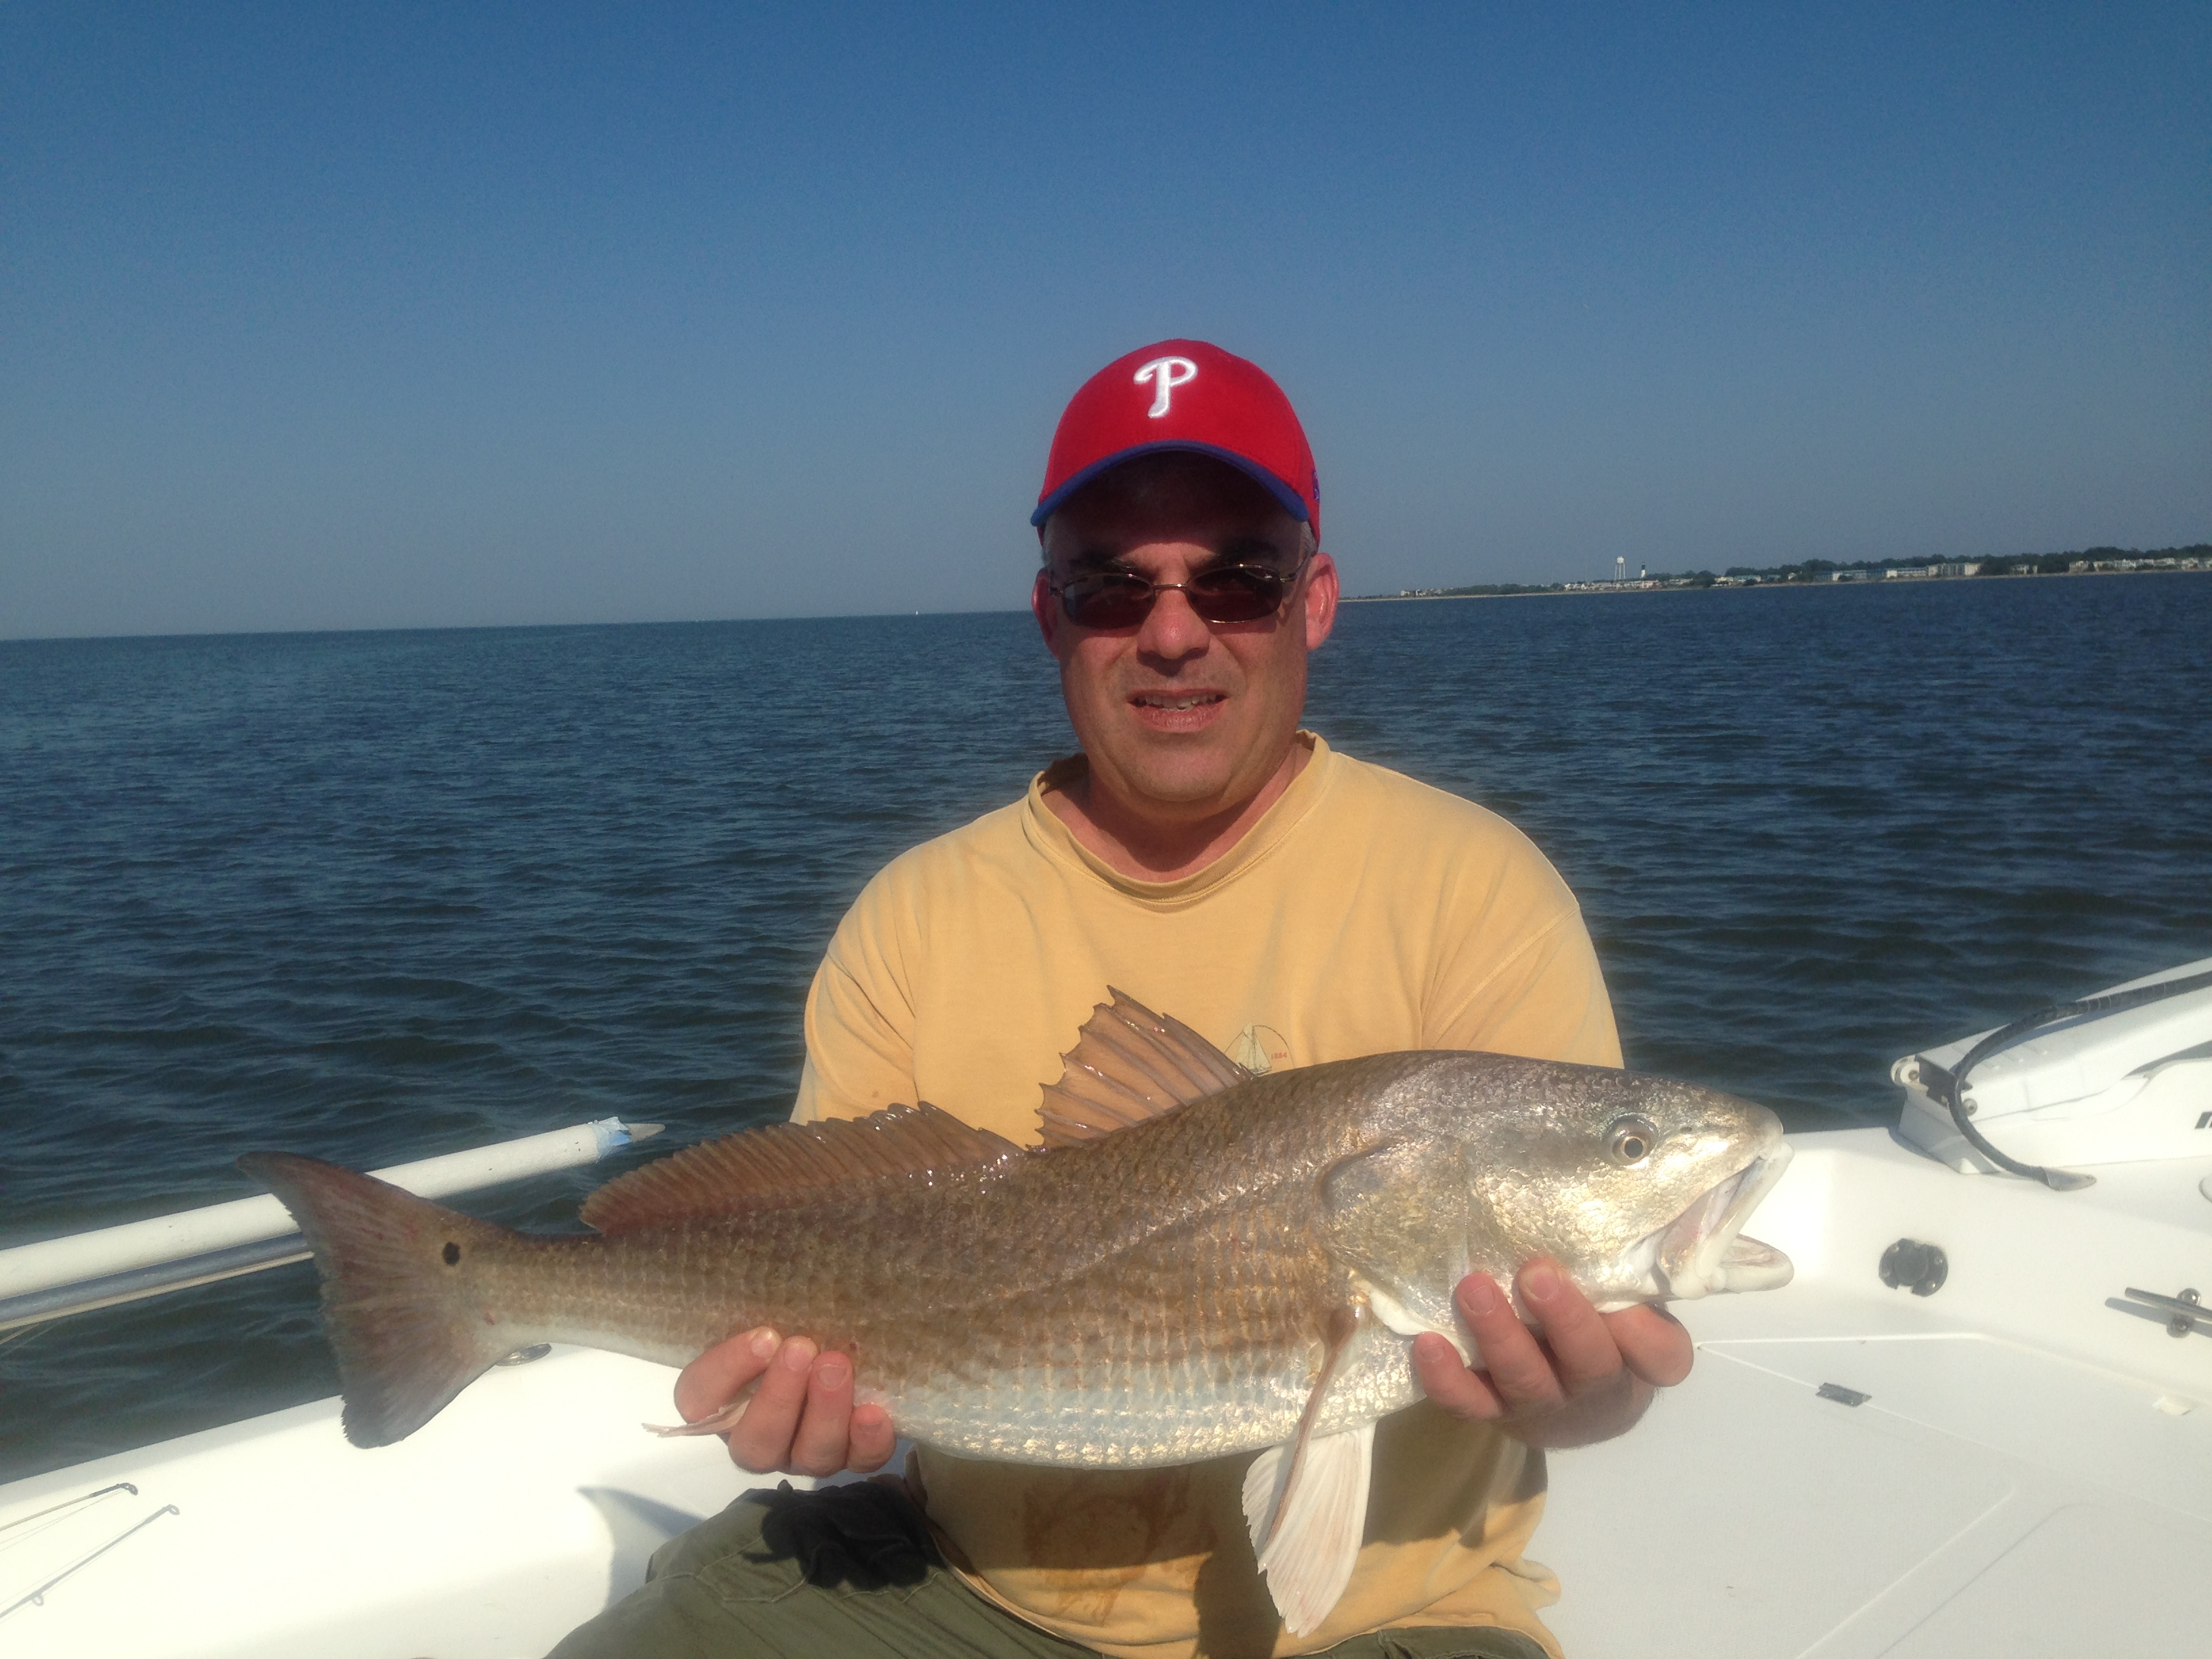 Phil Kriger with a large red drum